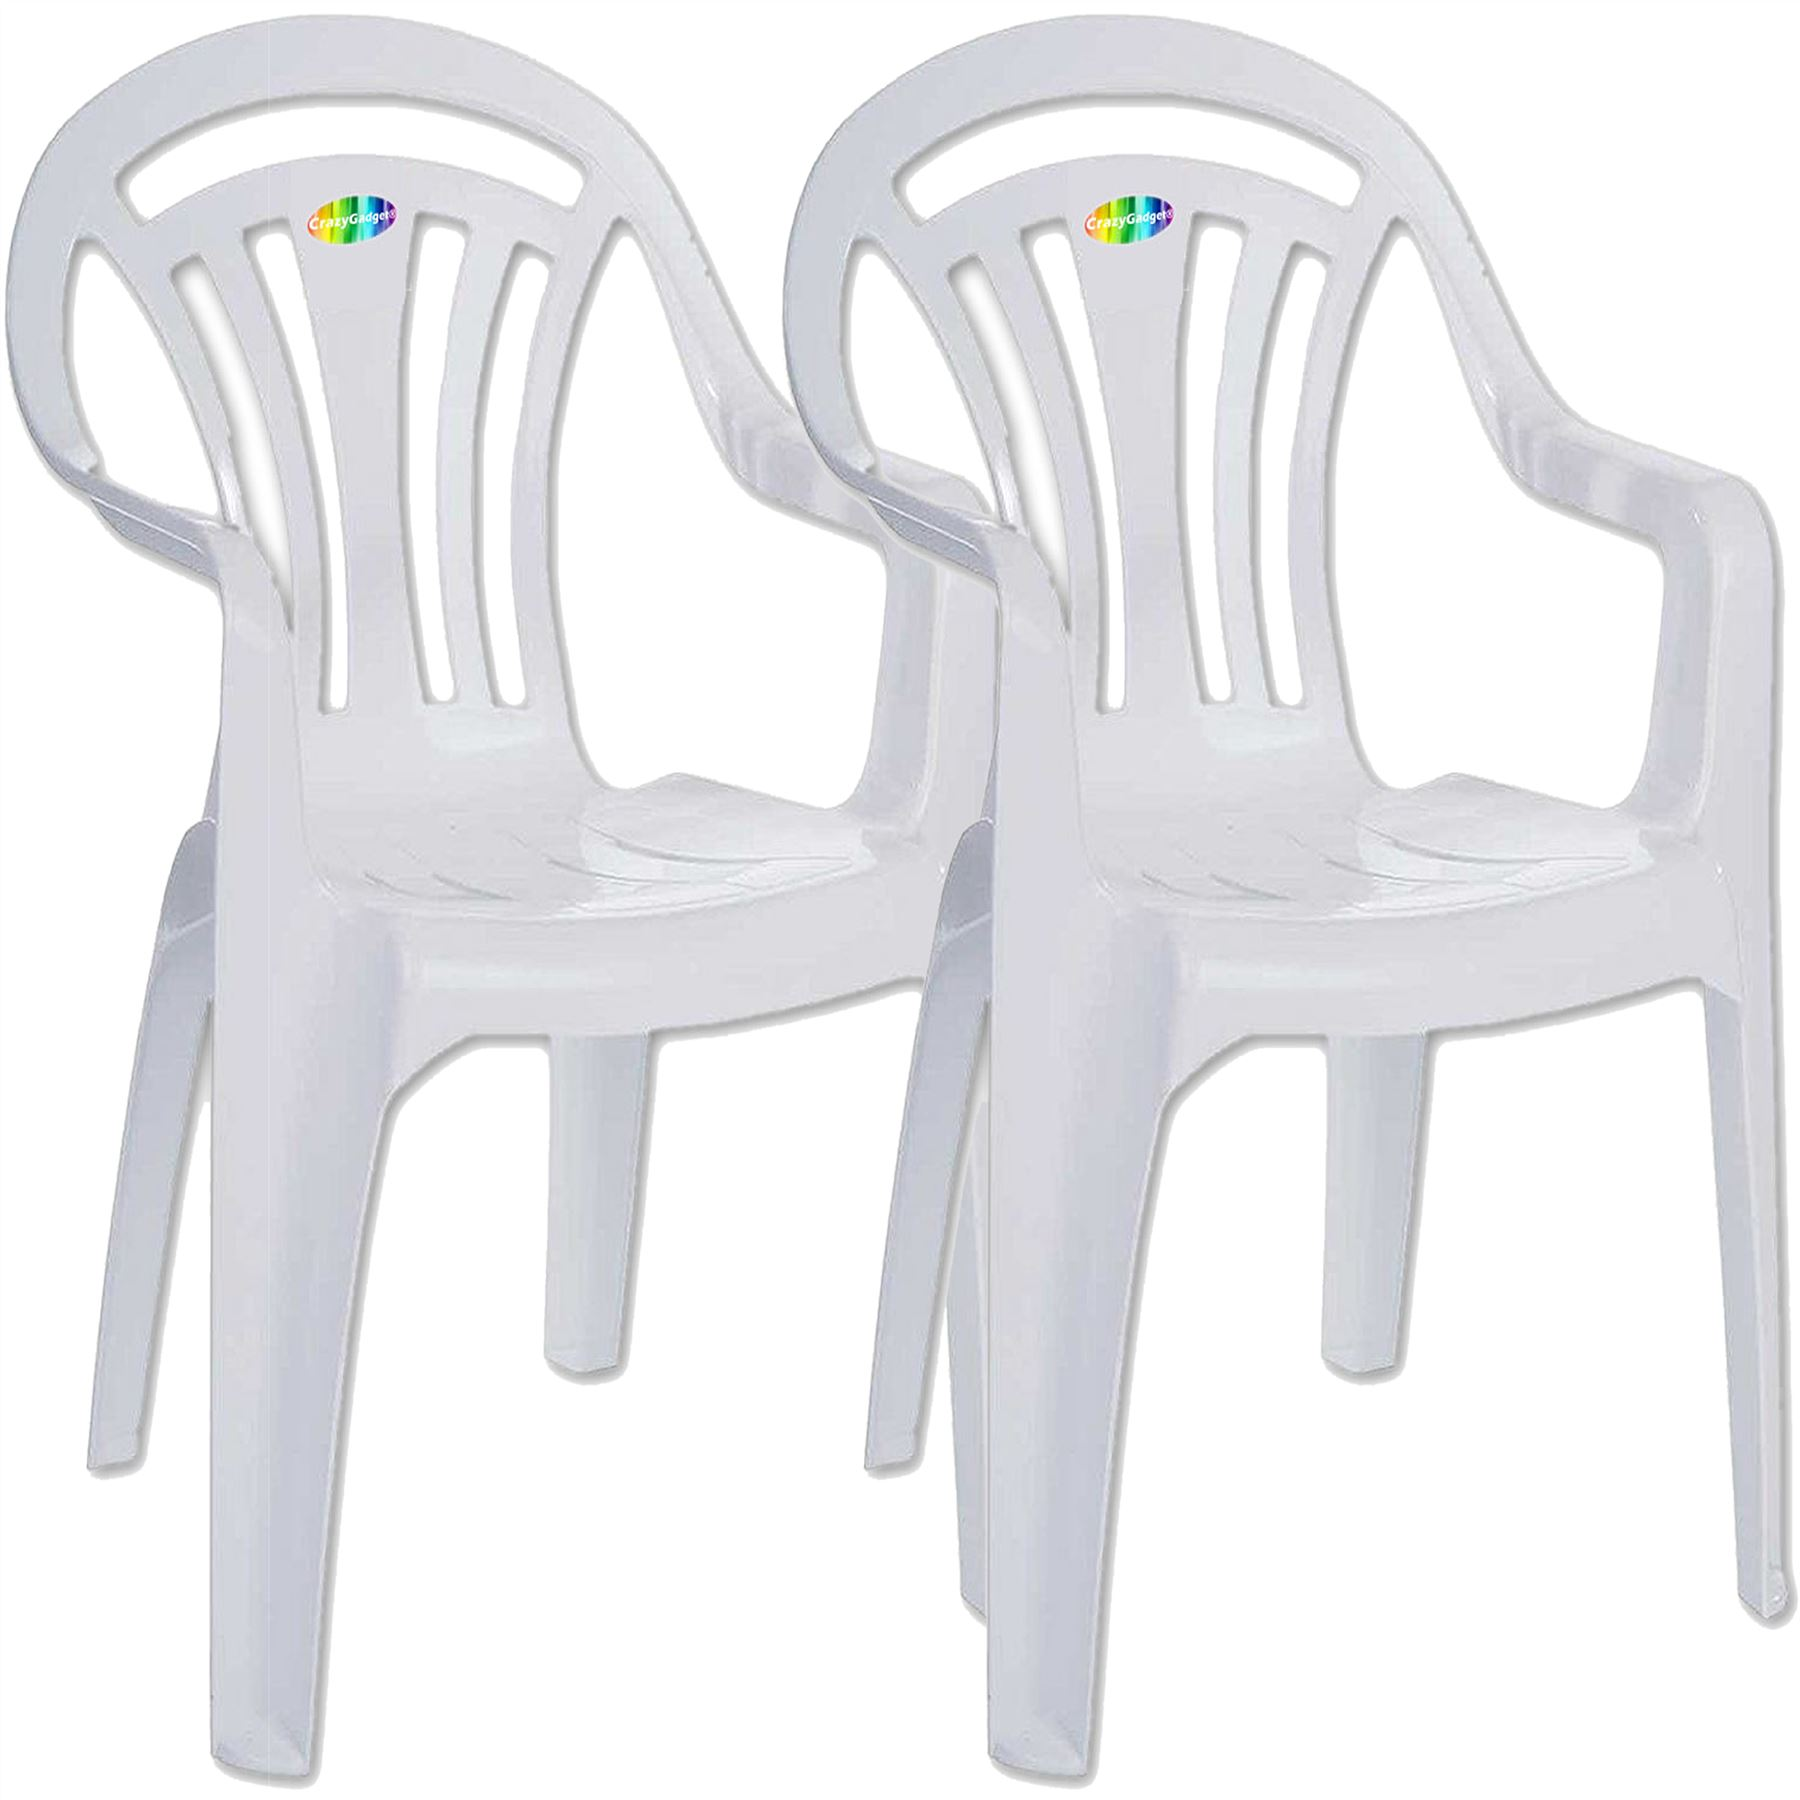 stackable outdoor plastic chairs round folding chair covers garden low back patio